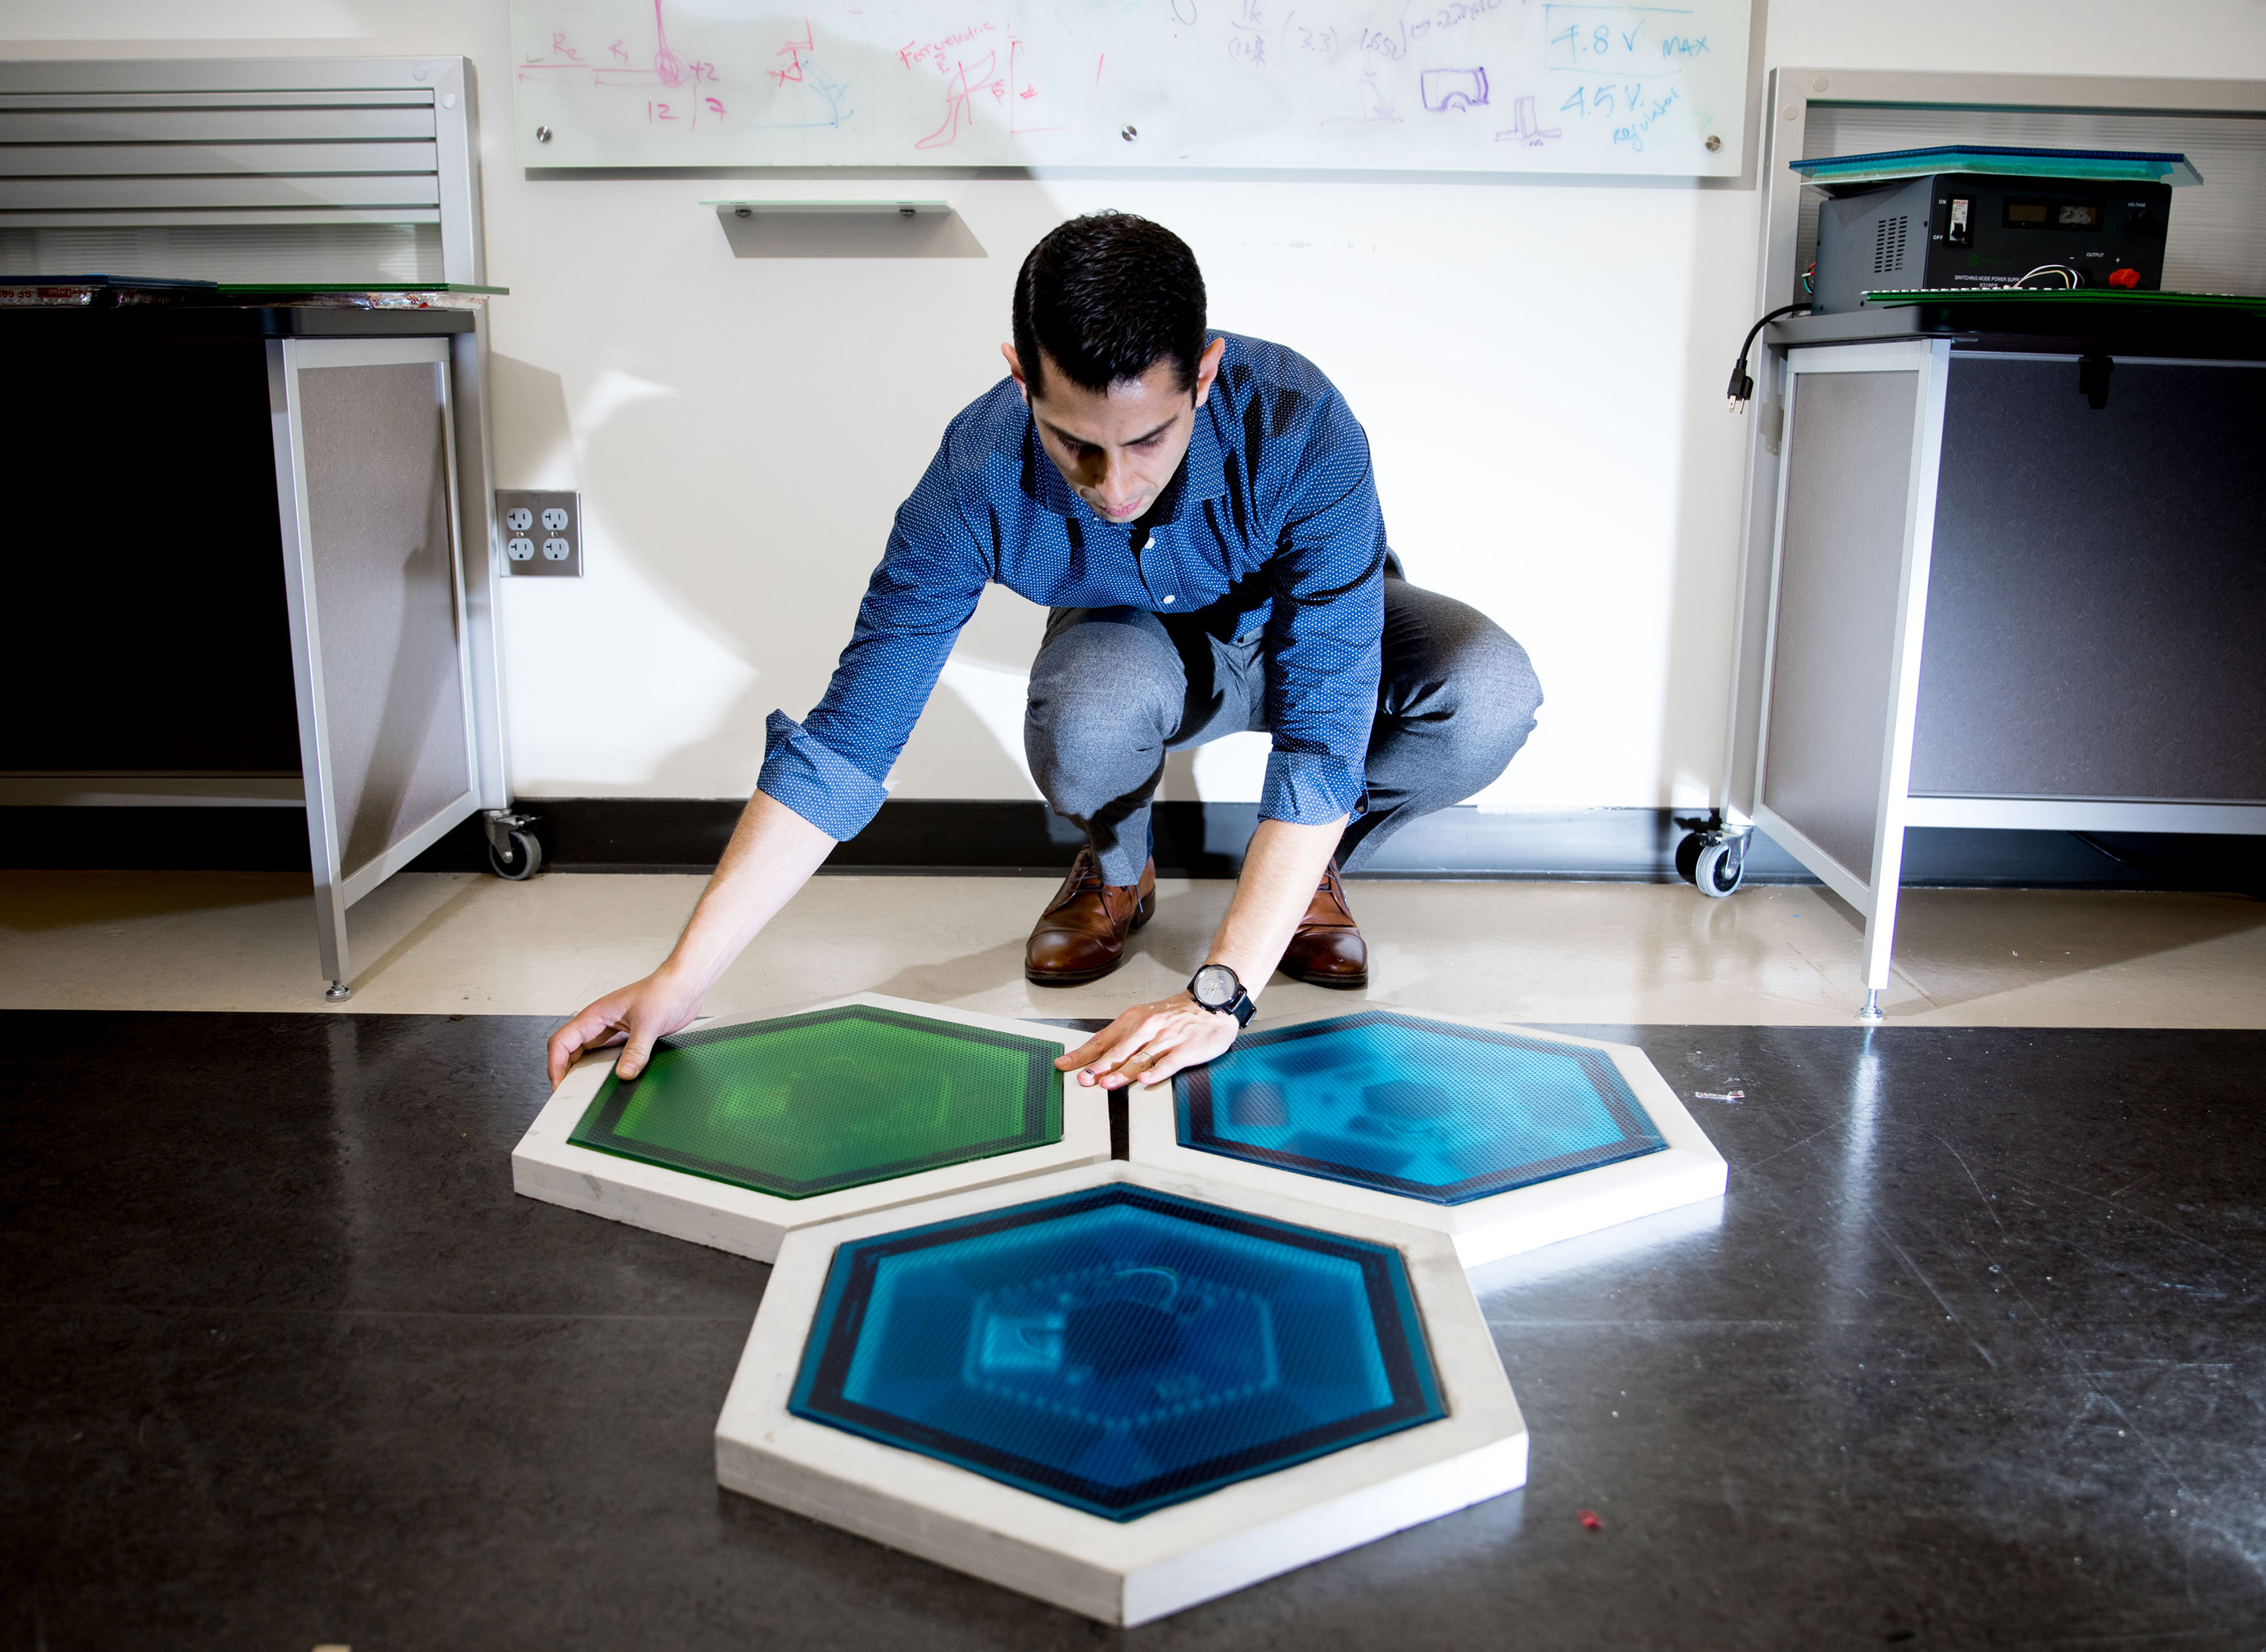 Ilan Stern, a GTRI senior research scientist, shows piezoelectric tiles that will be used to create a lighted outdoor footpath at the NASA Kennedy Space Center's Visitor Complex at Cape Canaveral, Florida. He's holding the electronic components used in th